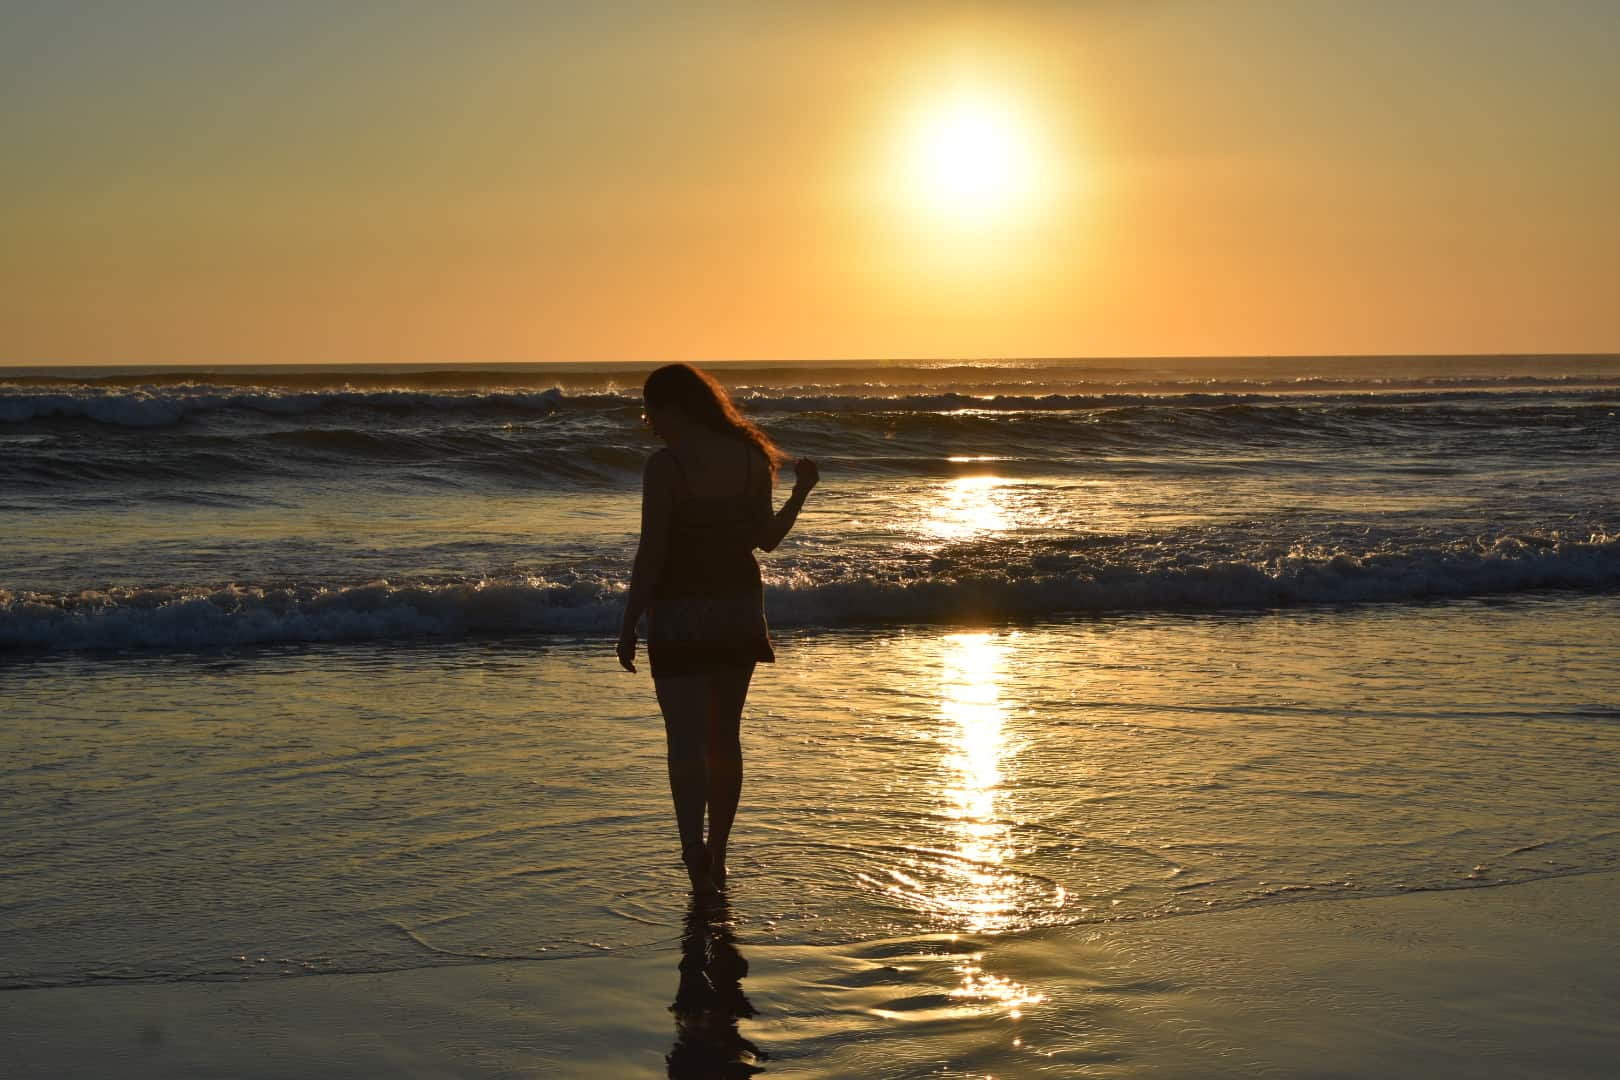 Solo female traveller admiring a stunning golden sunset at the beach in Bali, Indonesia.